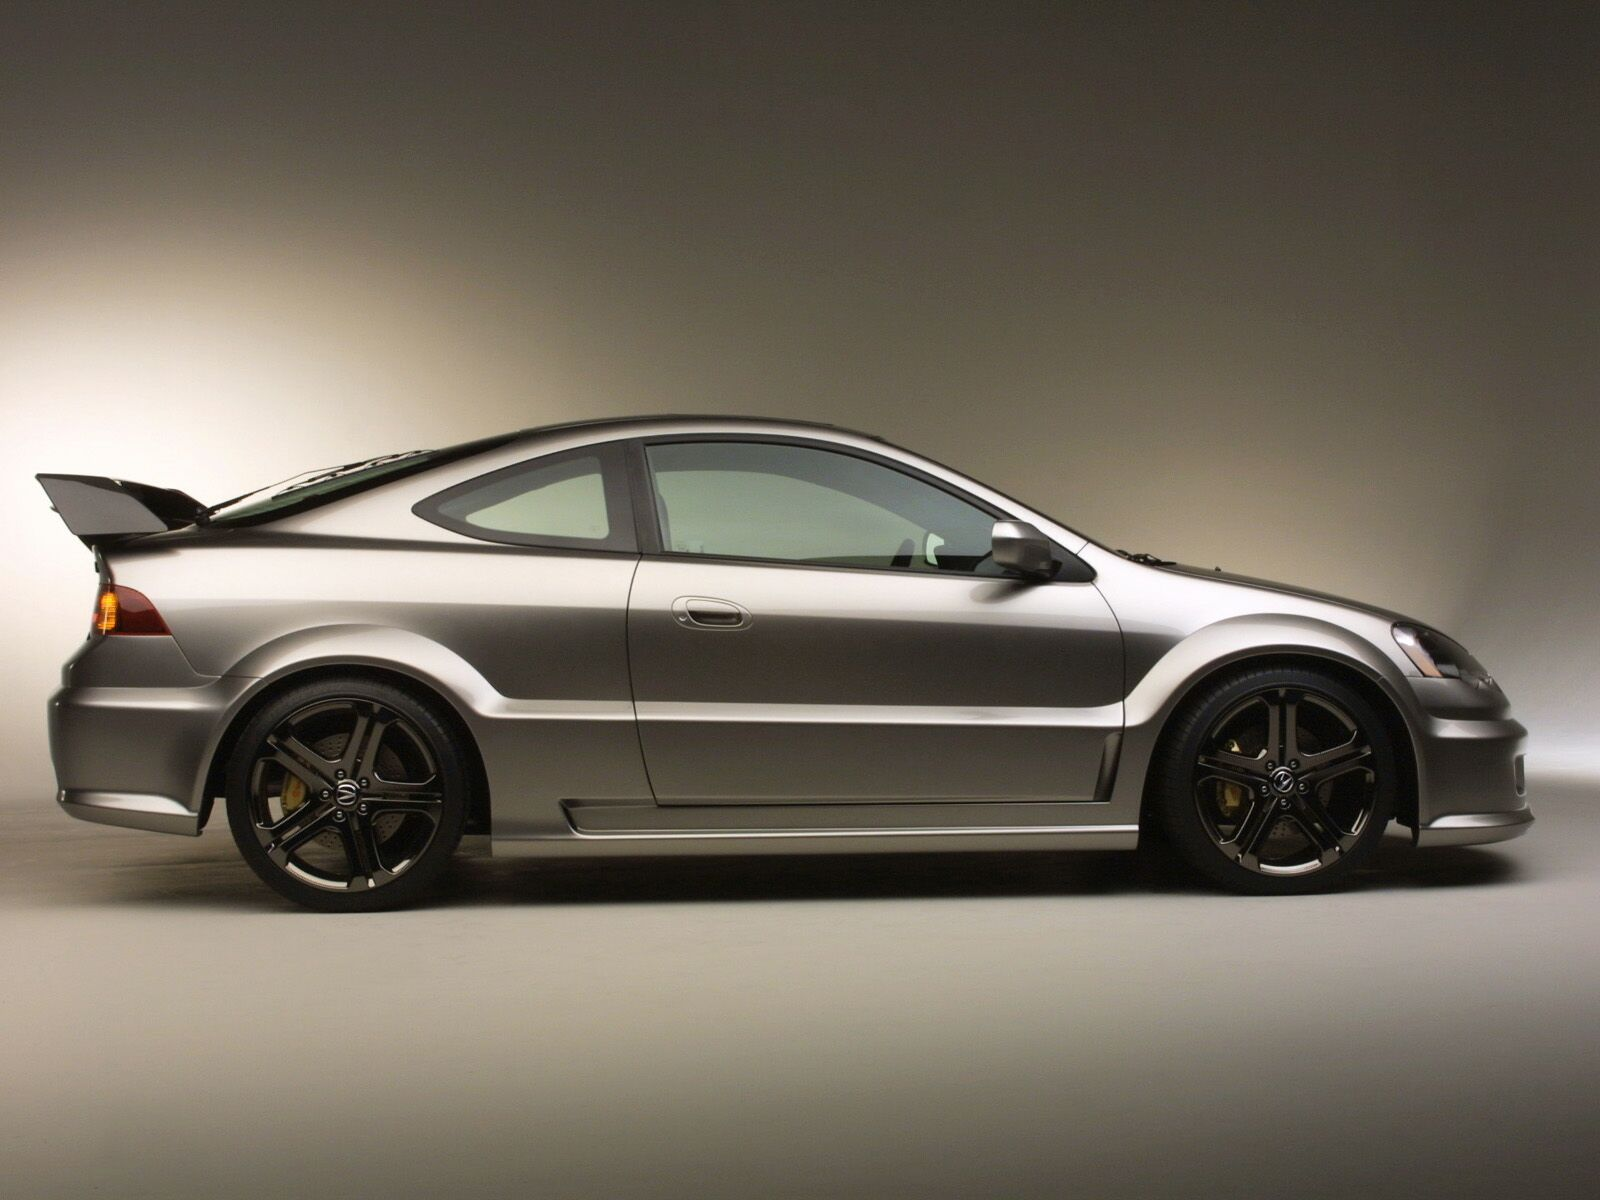 RSX A-Spec 2005 Concept Body Kit - Acura Forum : Acura Forums